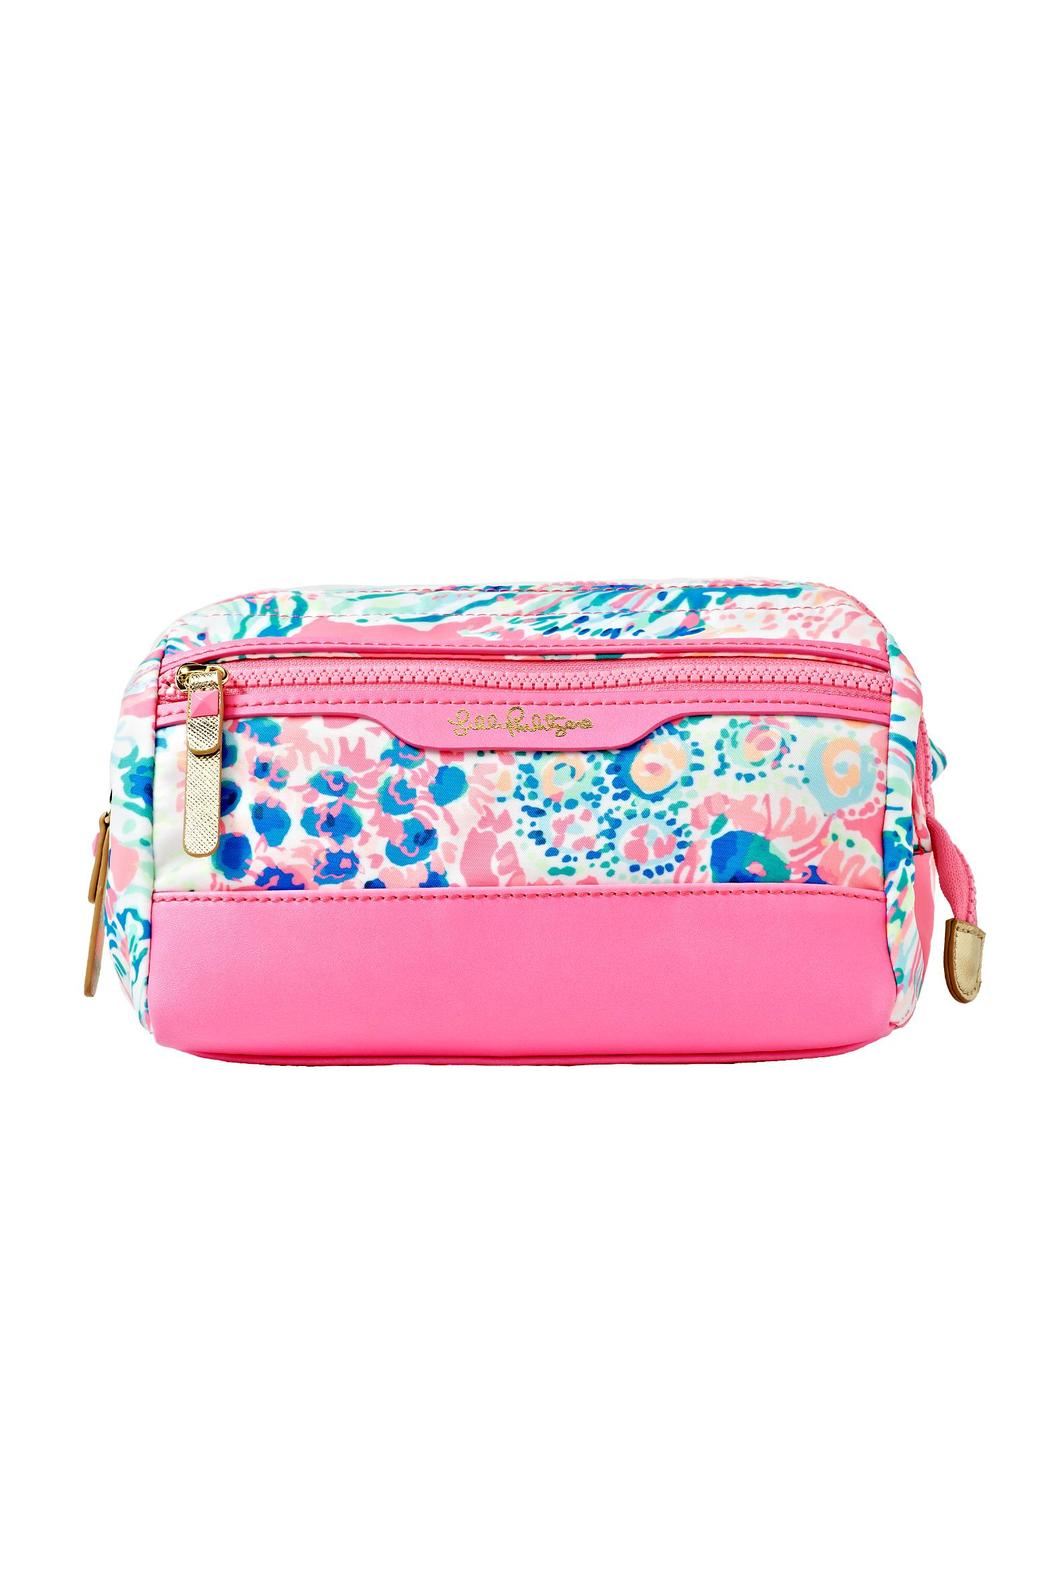 f33dce8b7b Lilly Pulitzer Travel Dopp Cosmetic Case from Sandestin Golf and ...